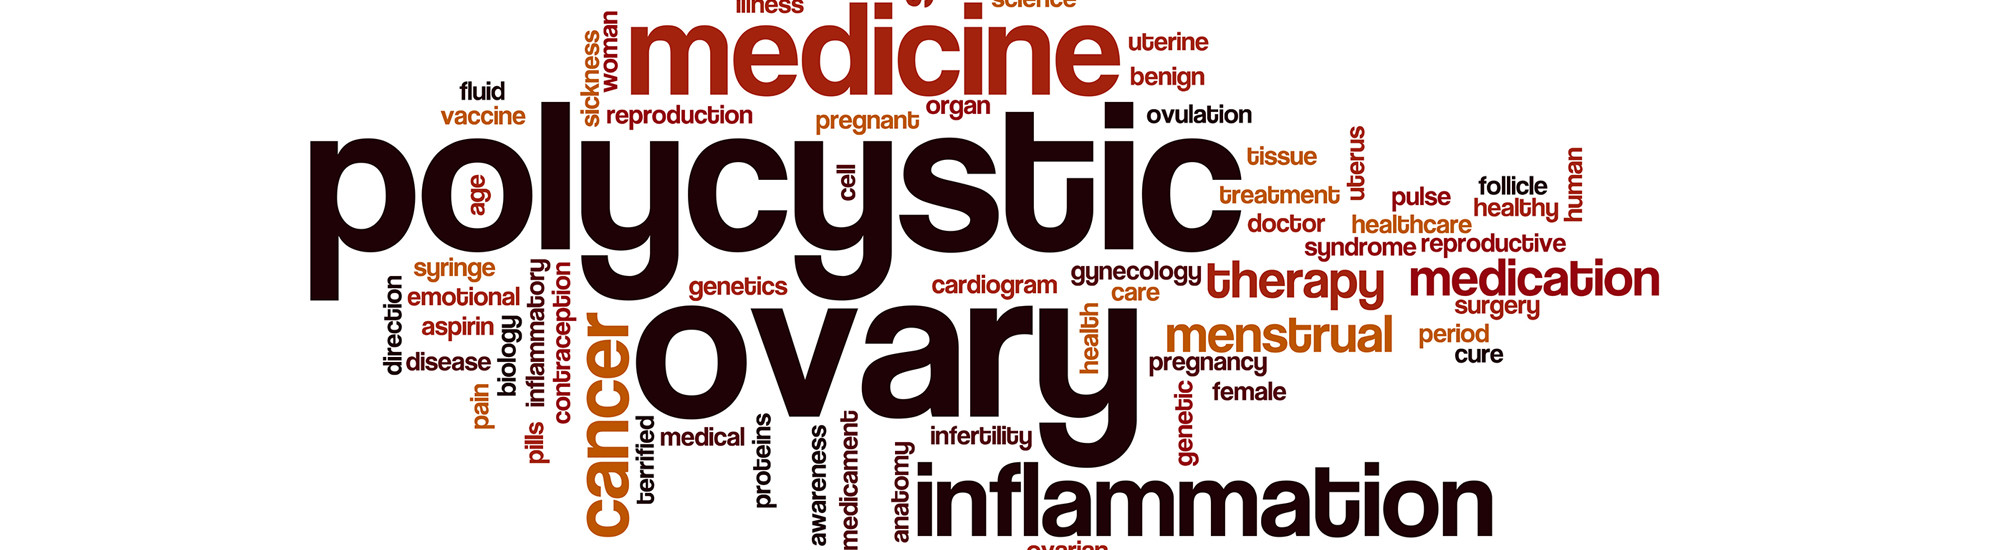 Ayurvedic treatment for What is Polycystic ovary syndrome-Disease -PCOS or PCOD-